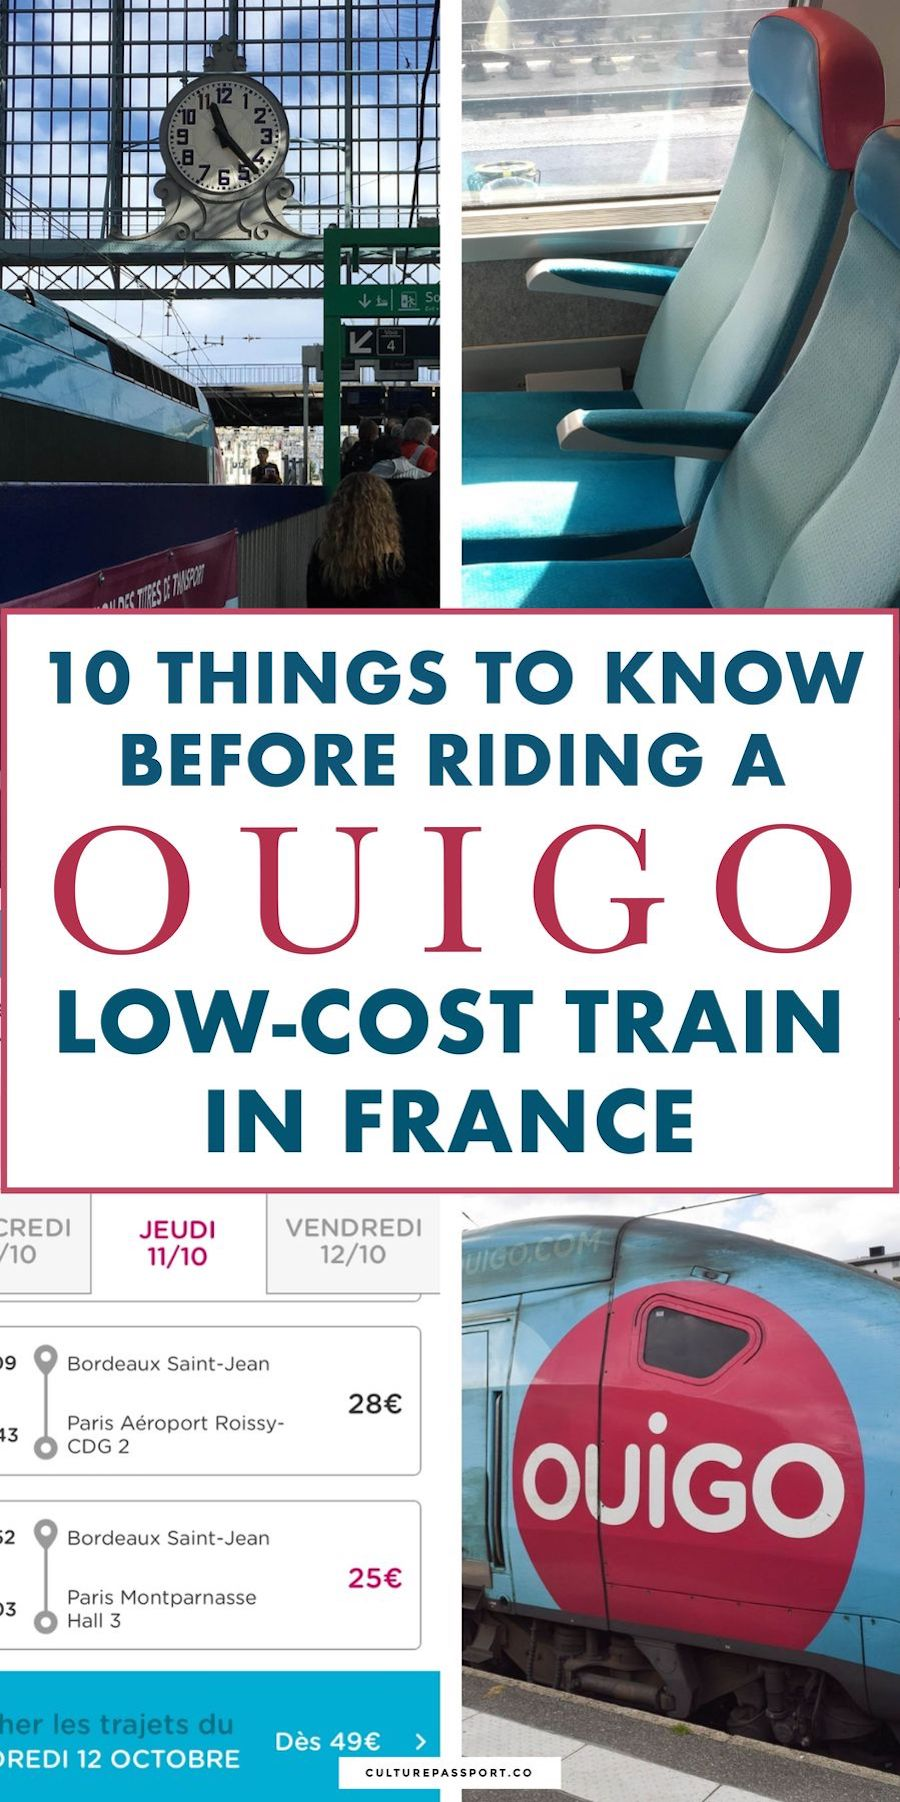 OuiGo Review: 10 Things To Know Before Riding This Low Cost Train In France